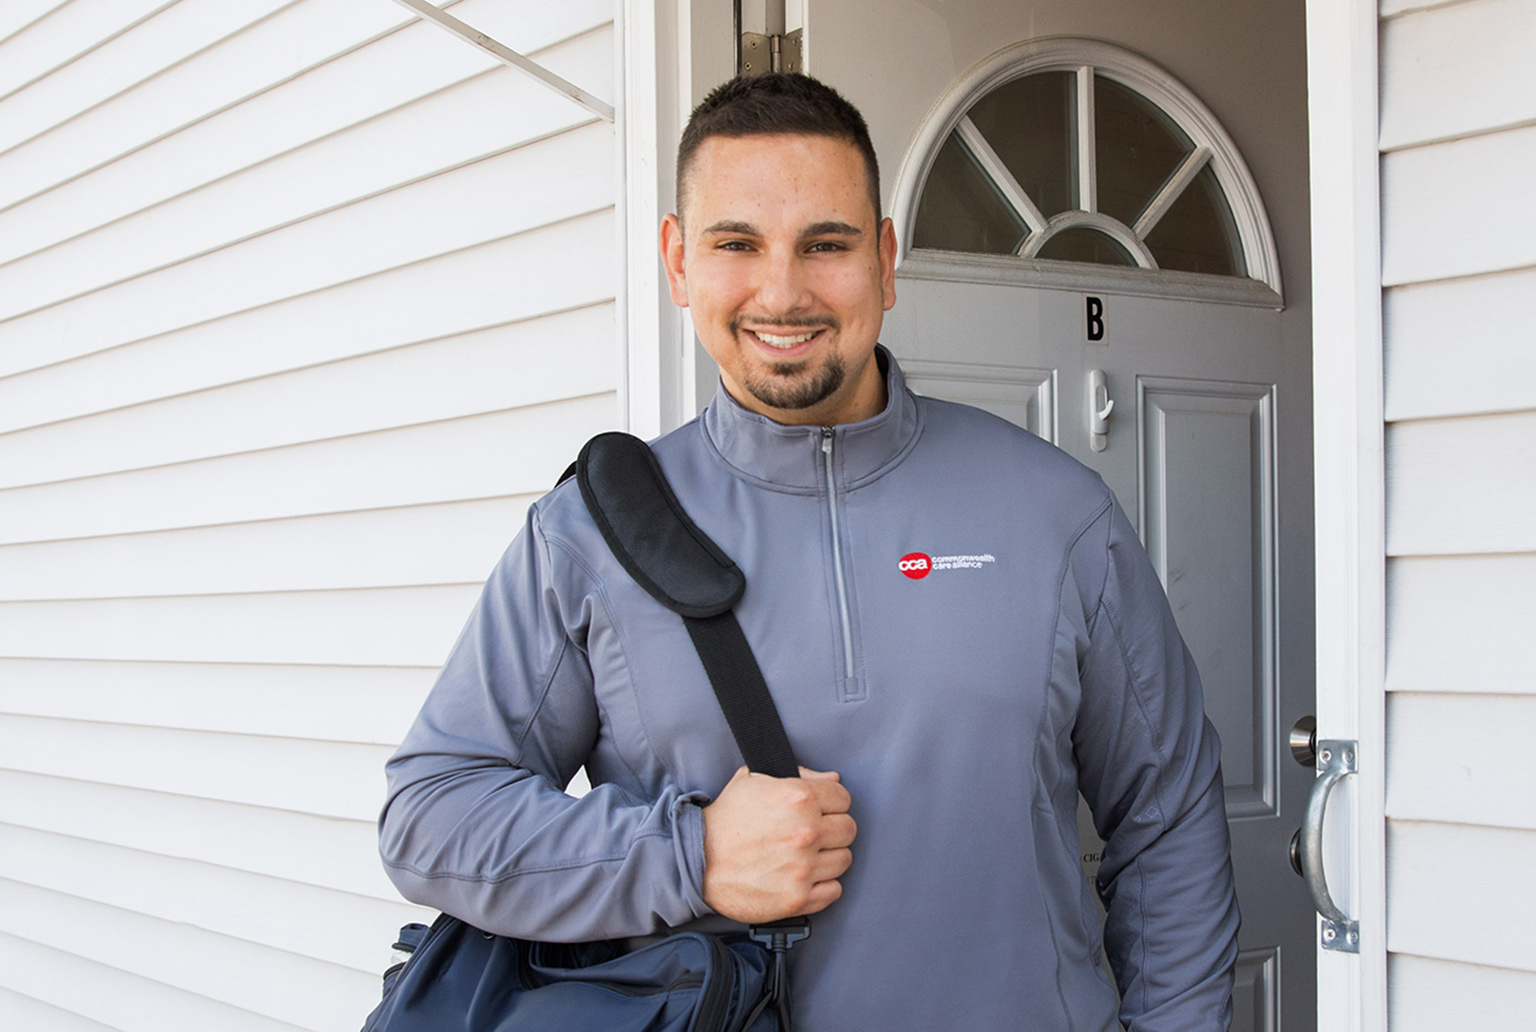 Young male professional standing in front of his home with professional bag over shoulder wearing CCA jacket